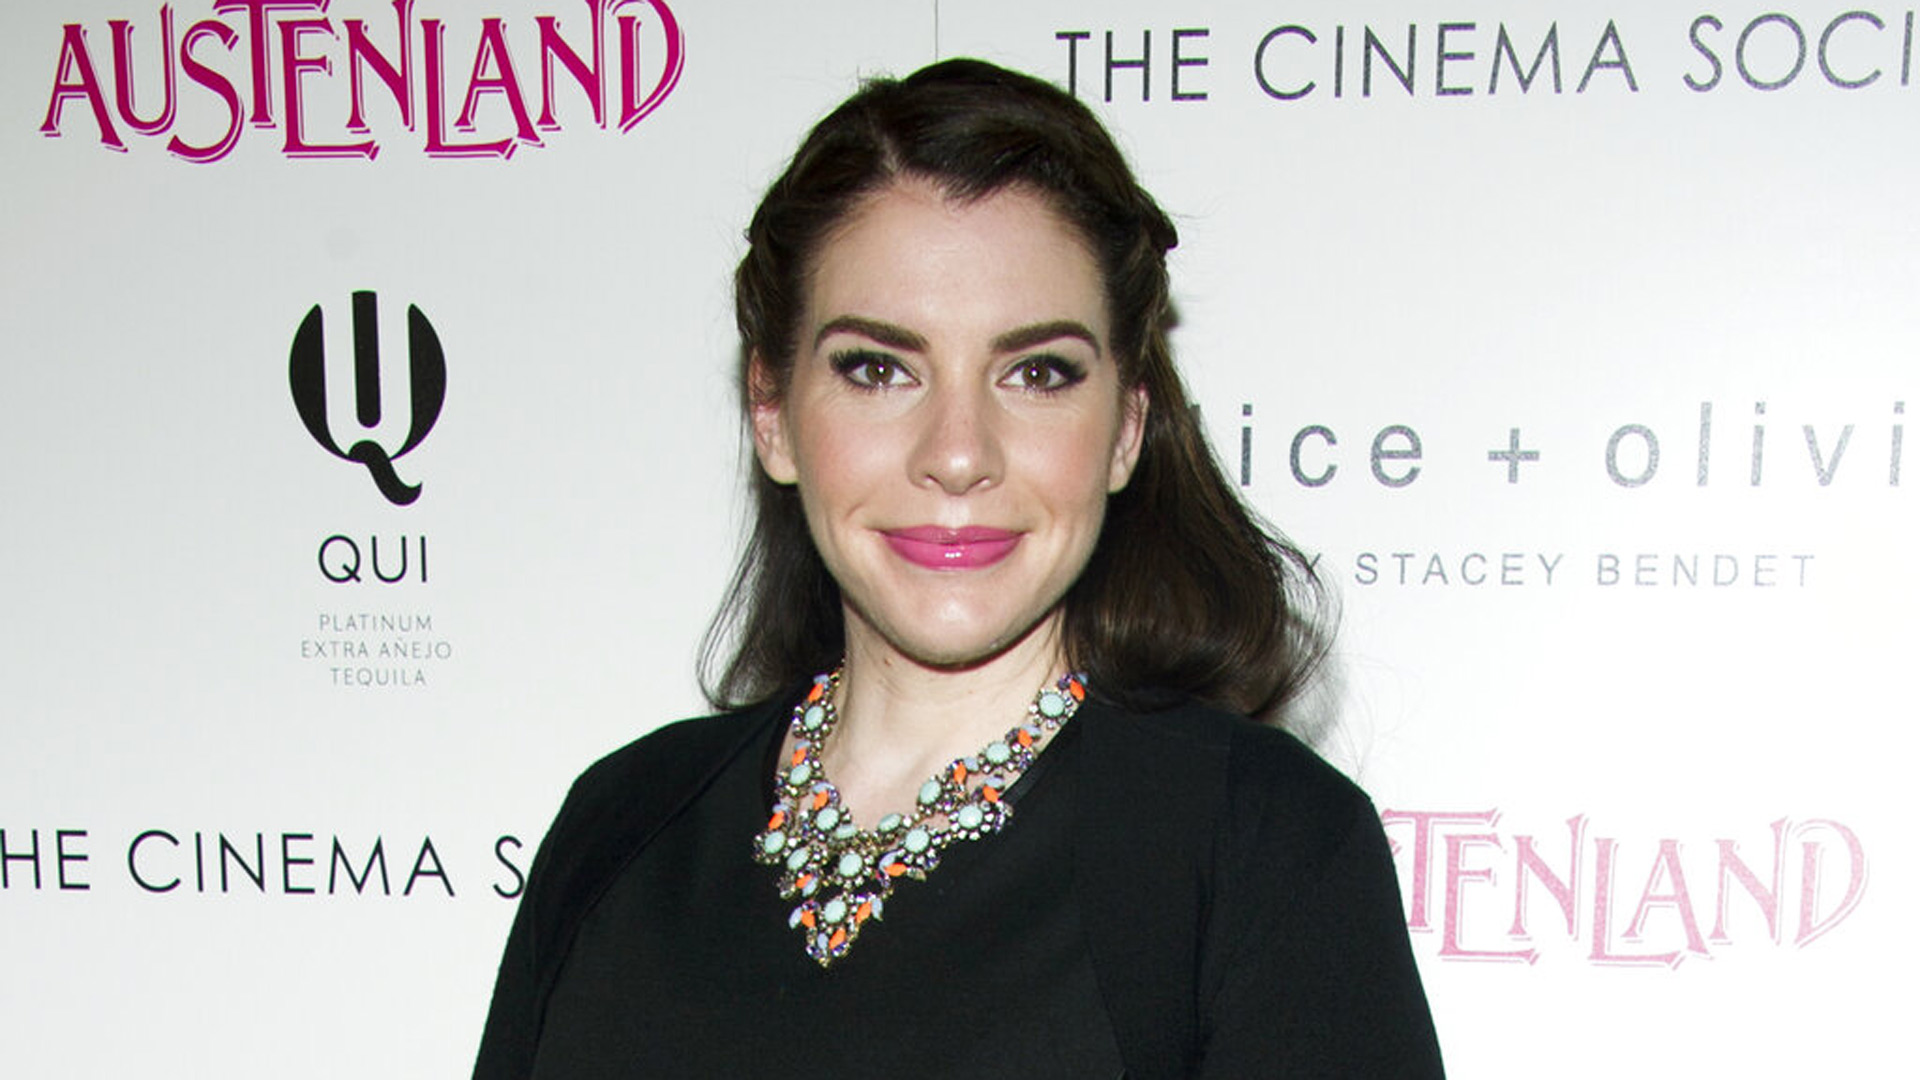 """FILE - Stephenie Meyer attends a screening of Sony PIctures Classics' """"Austenland"""" on Aug. 12, 2013 in New York. Meyer is planning at least two more books in her mega-selling vampire series """"Twilight Saga"""" she said during a recent promotional event. Meanwhile, the author's long-awaited """"Midnight Sun"""" sold more than 1 million copies in its first week, Little, Brown Books for Young Readers announced Thursday. (Photo by Charles Sykes/Invision/AP, FIle)"""